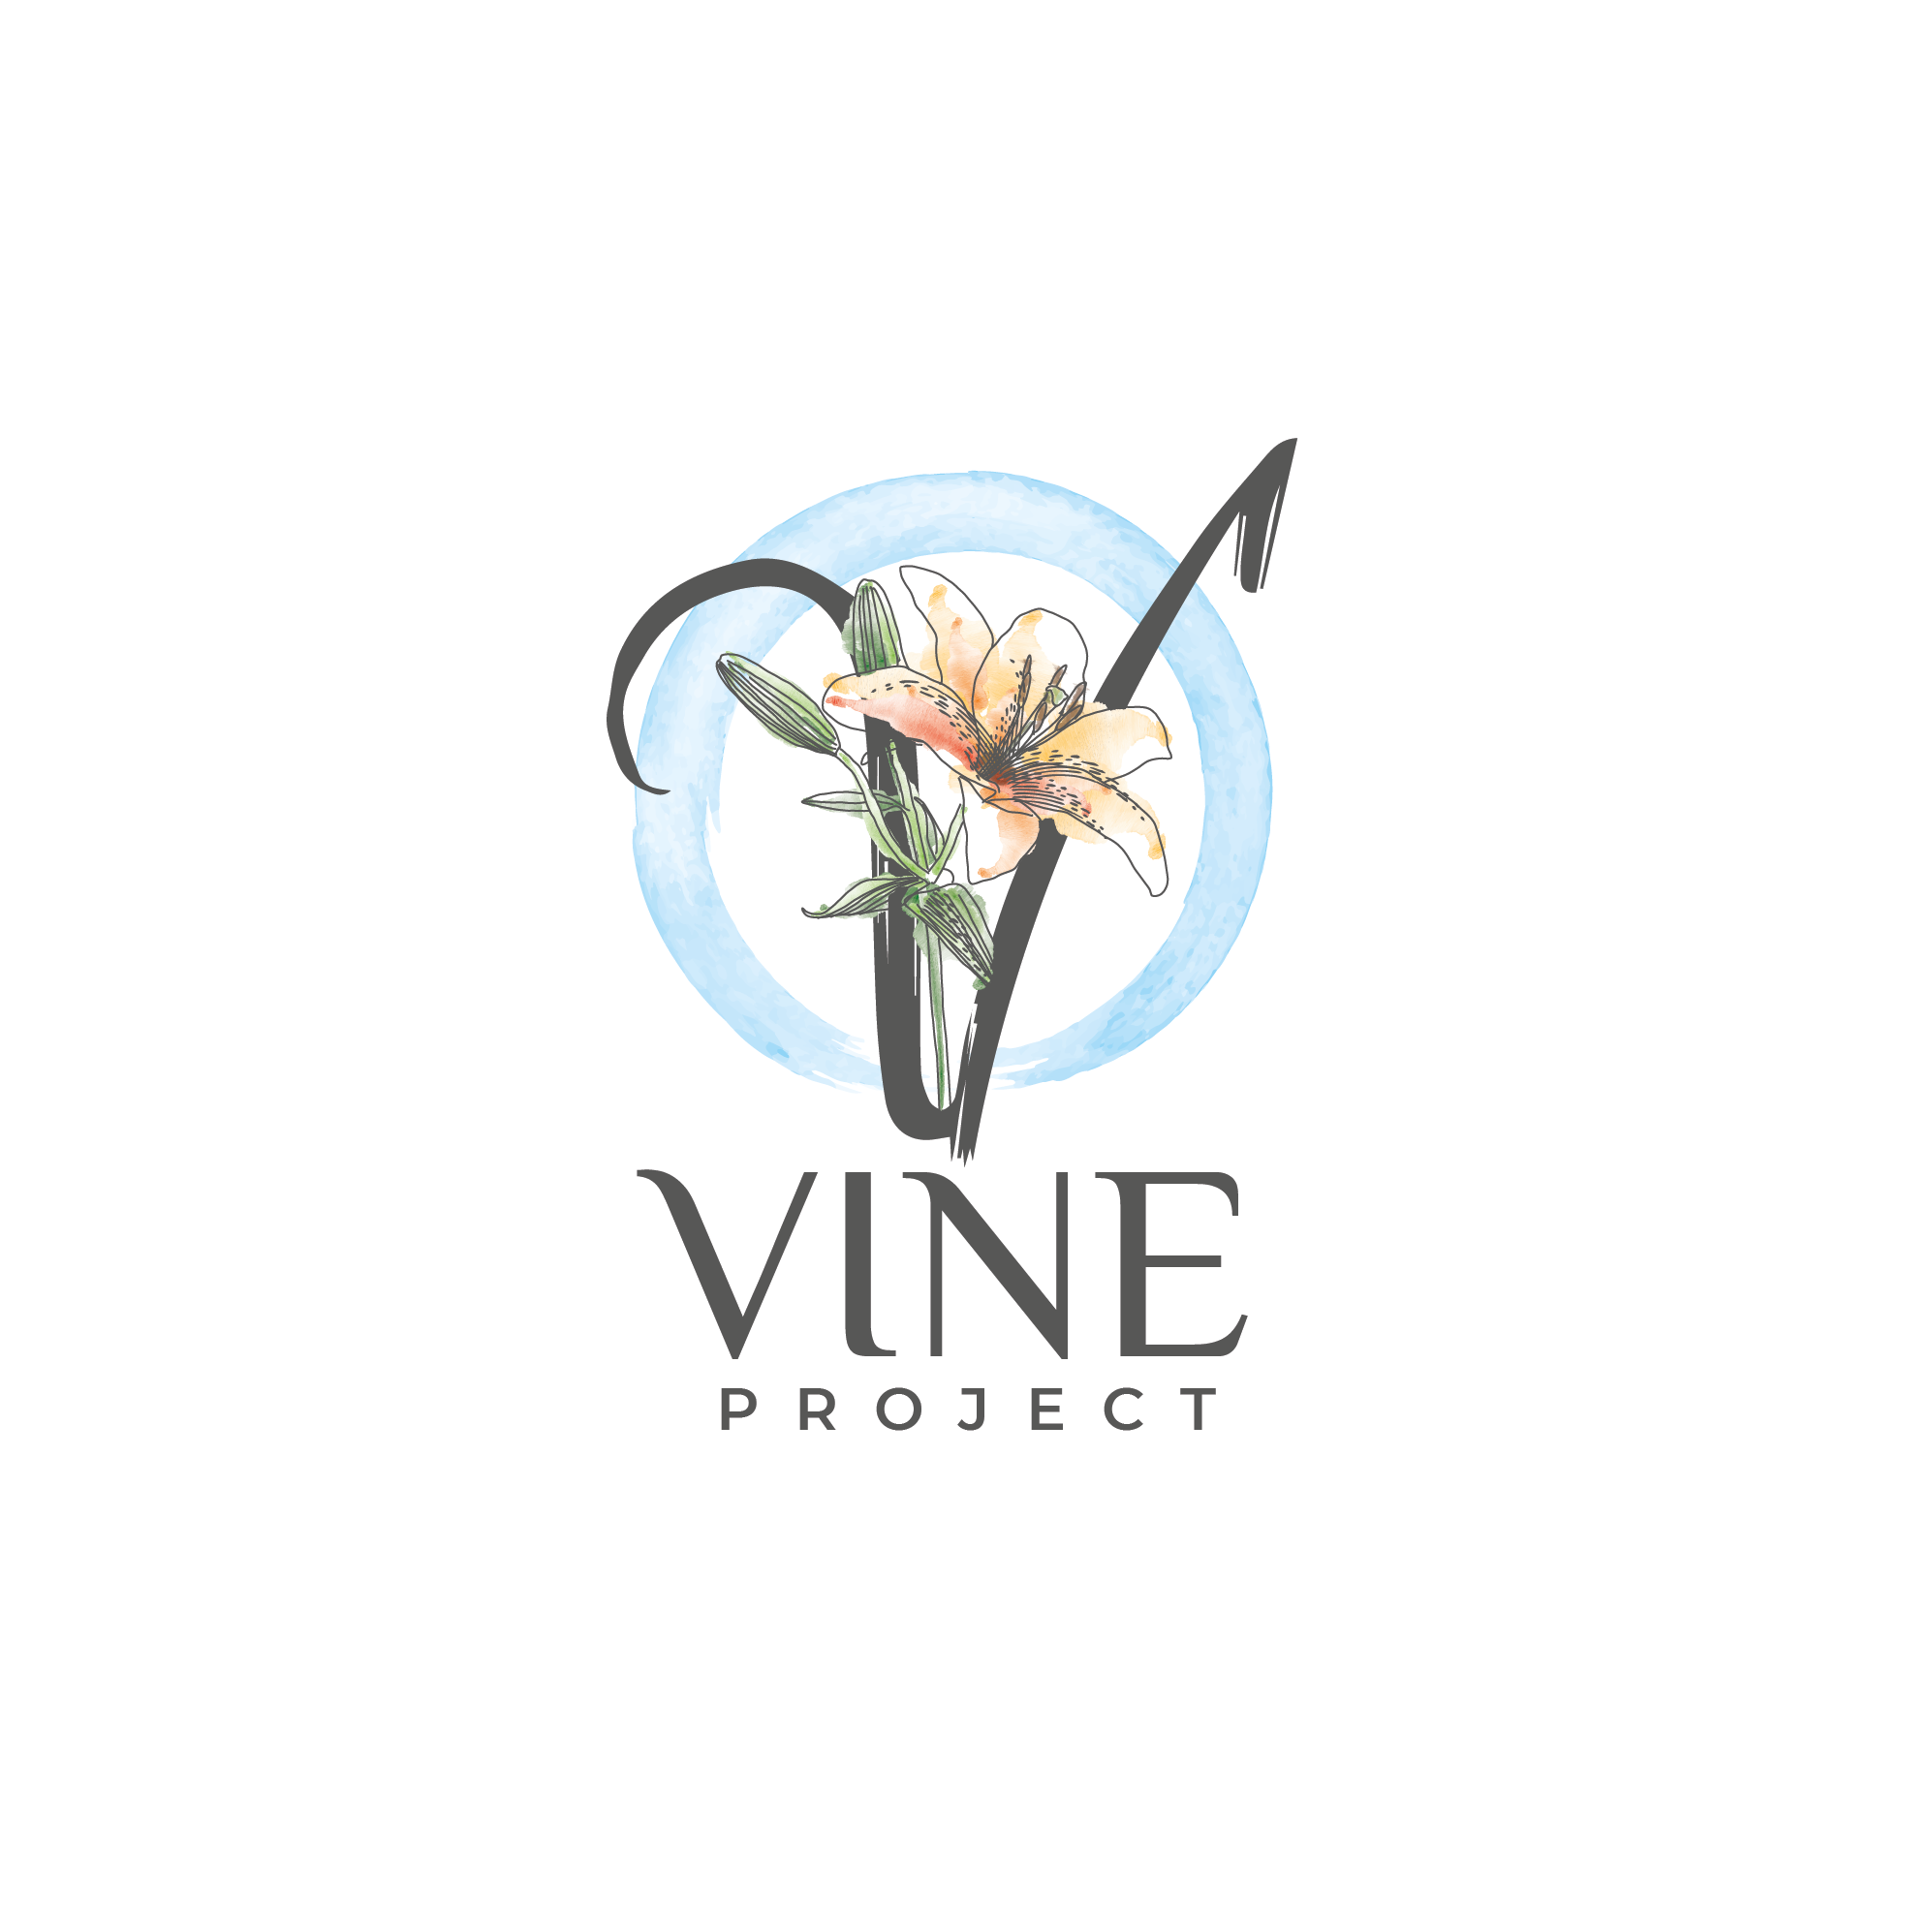 The Vine Project- Women's empowerment project